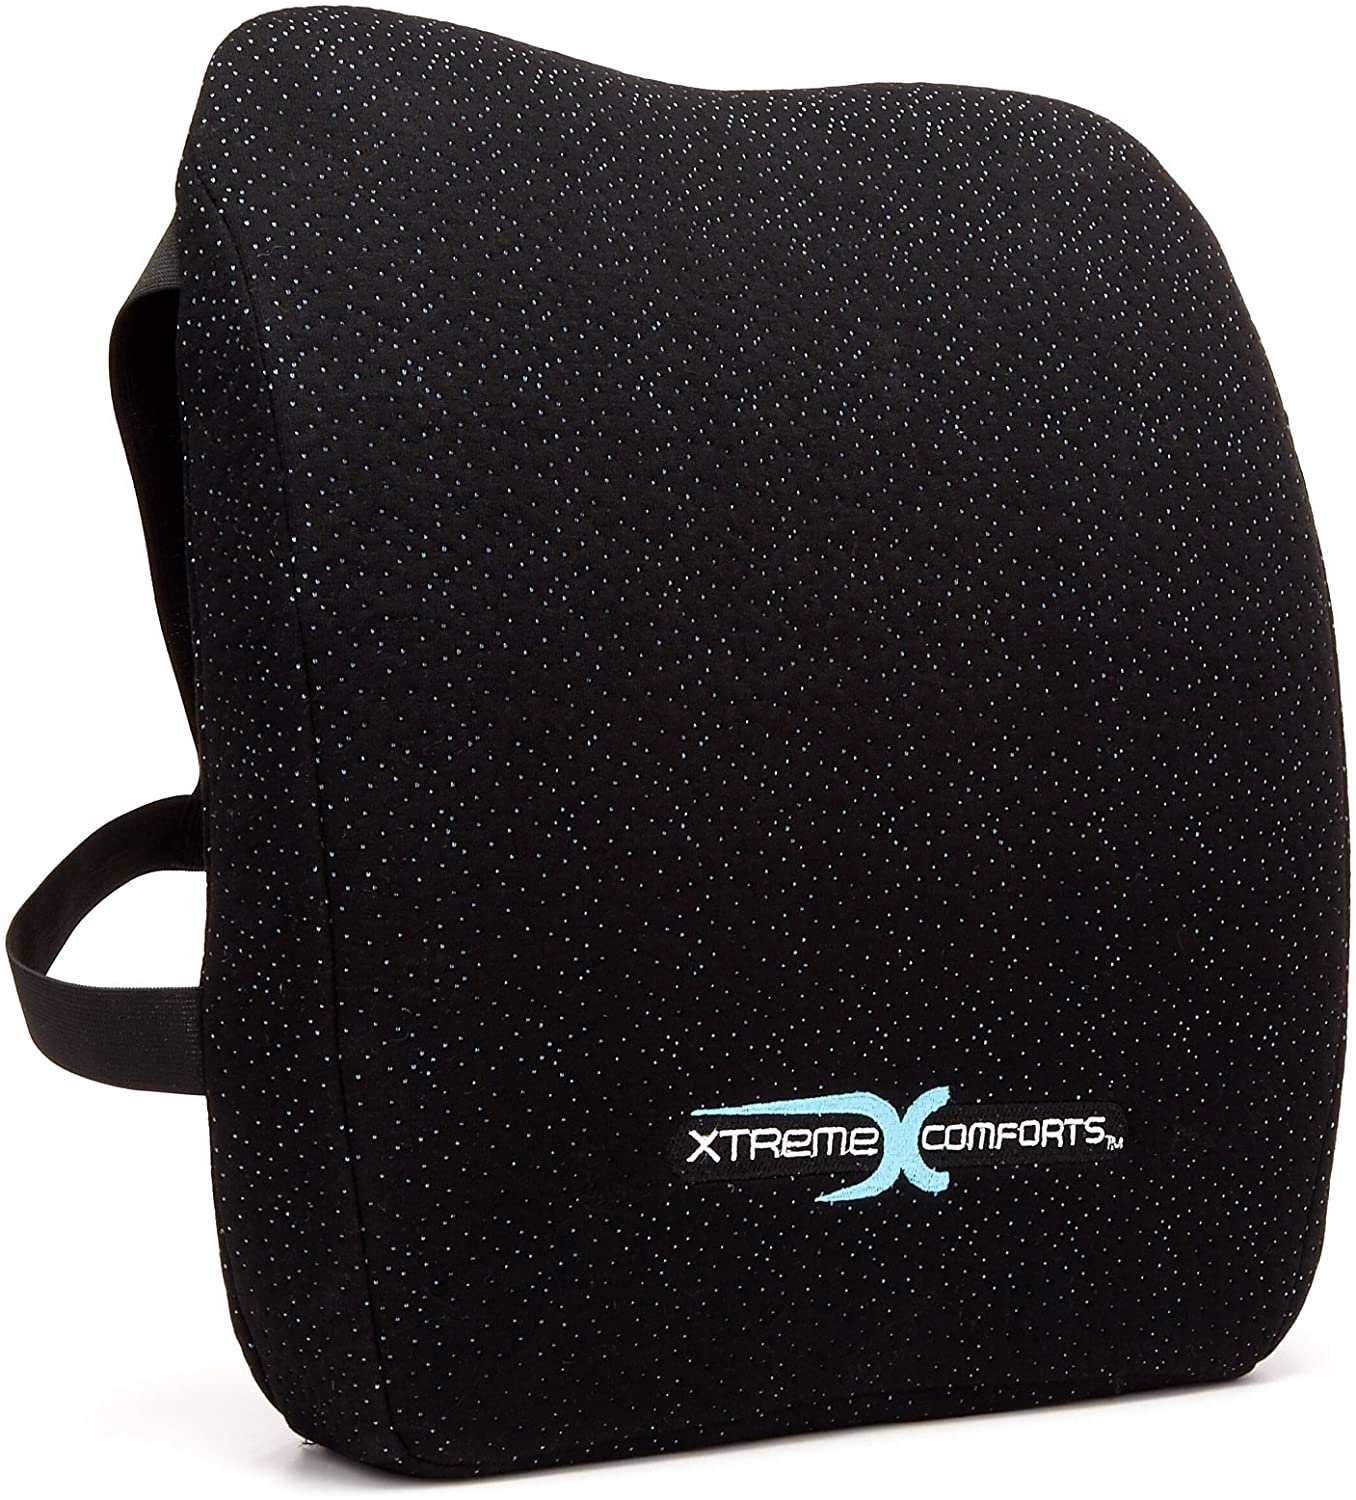 Xtreme Comforts Memory Foam Back Support Cushion - Designed for Back Pain Relief - Lumbar Pillow with Premium Adjustable Strap